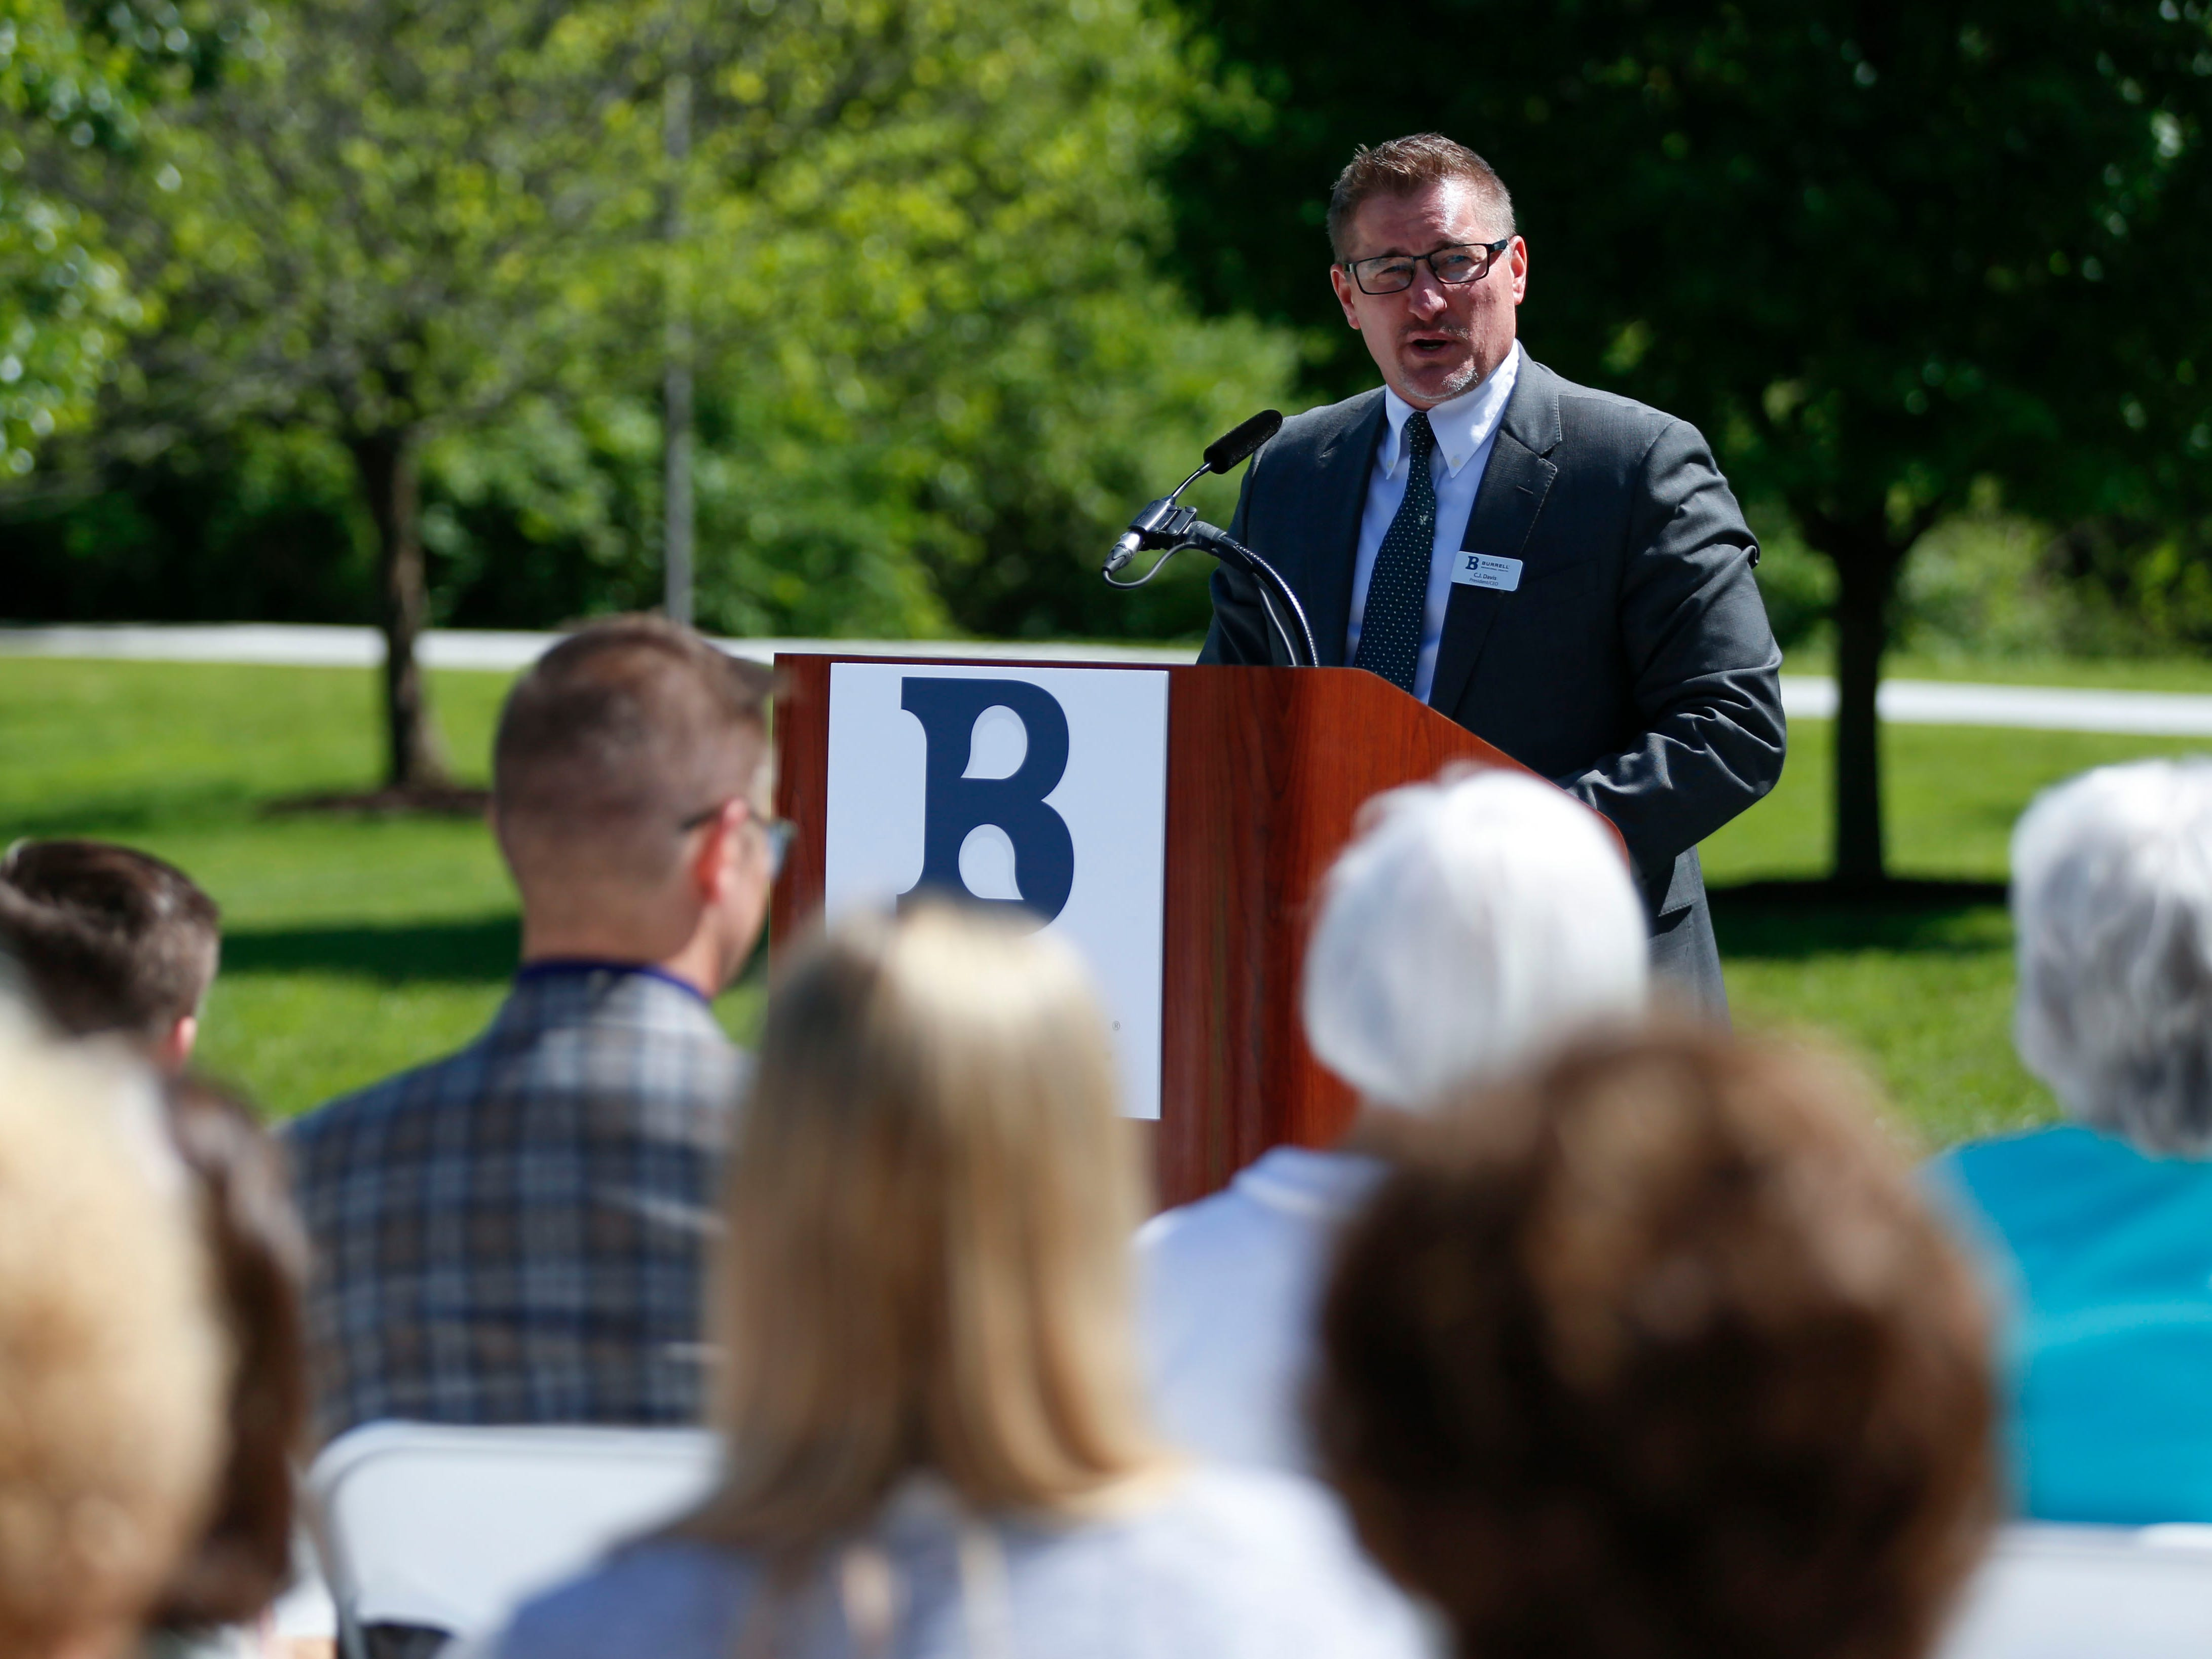 Dr. C.J. Davis, president and CEO of Burrell Behavioral Health, speaks during a dedication ceremony of Schaible Lake, named after Burrell founder, Dr. Todd Schaible, on Friday, May 10, 2019.